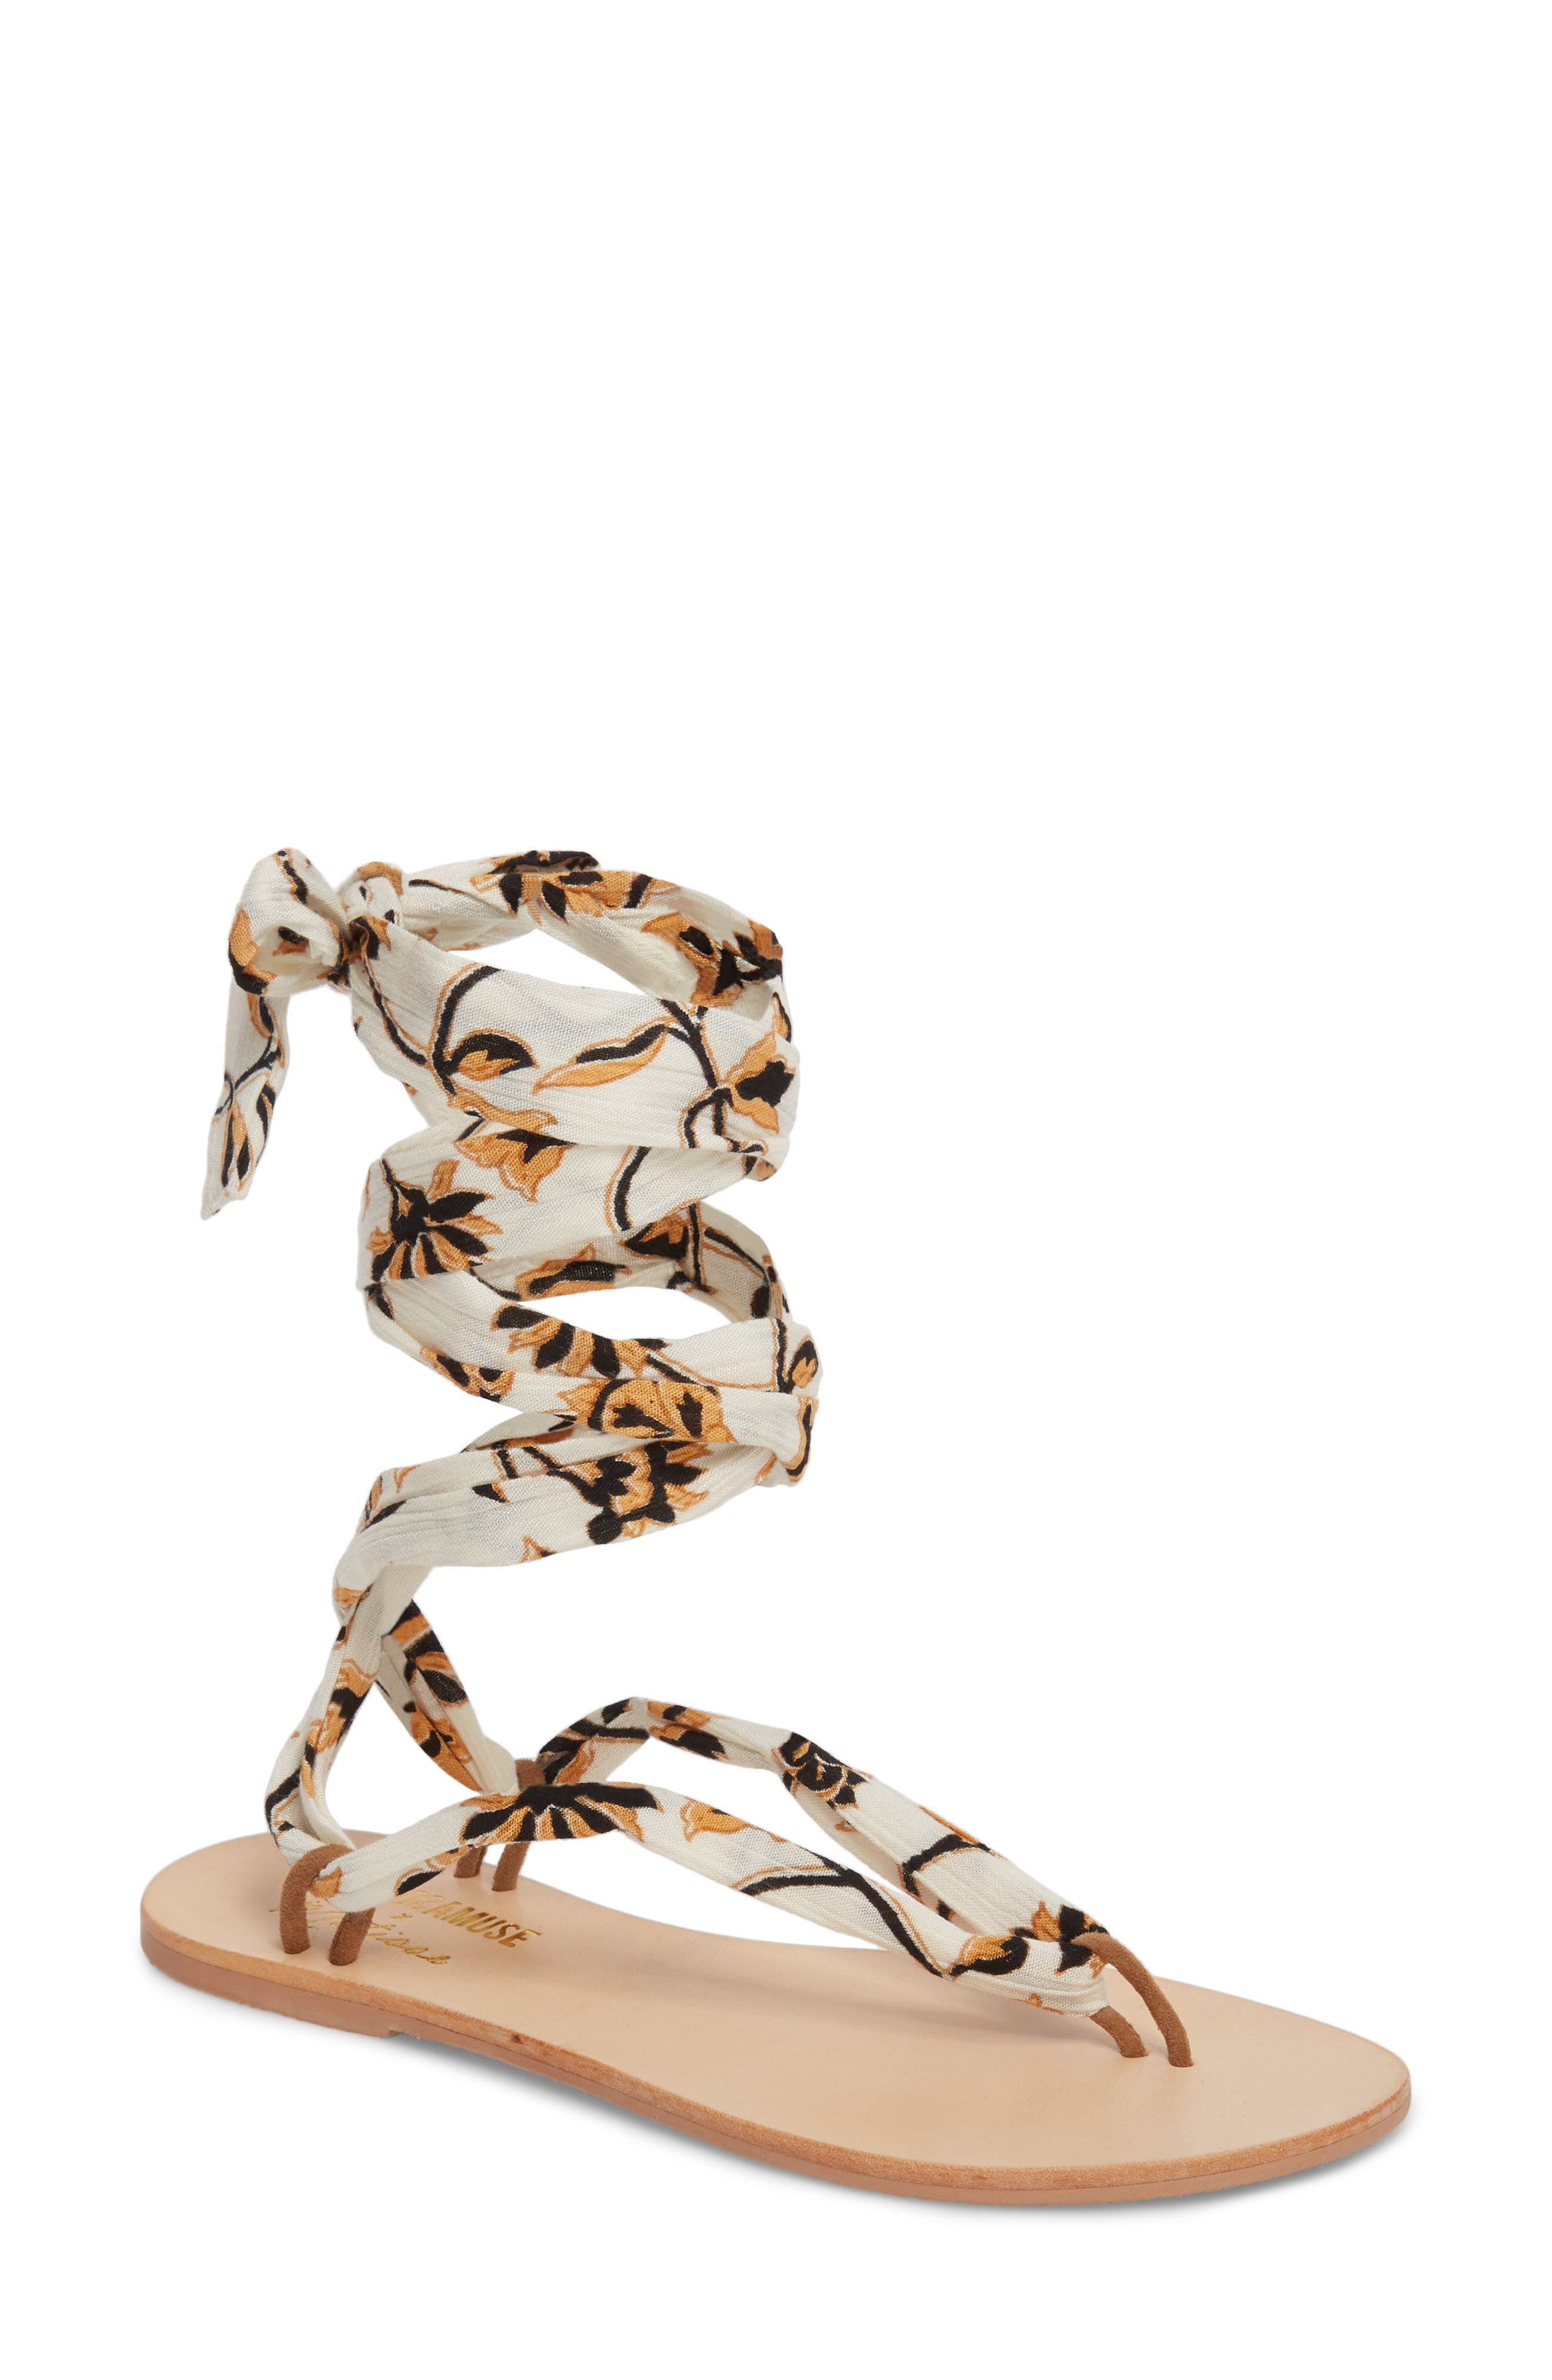 Amuse Society x Matisse Oceano Lace-Up Sandal,                         Main,                         color, Natural Fabric